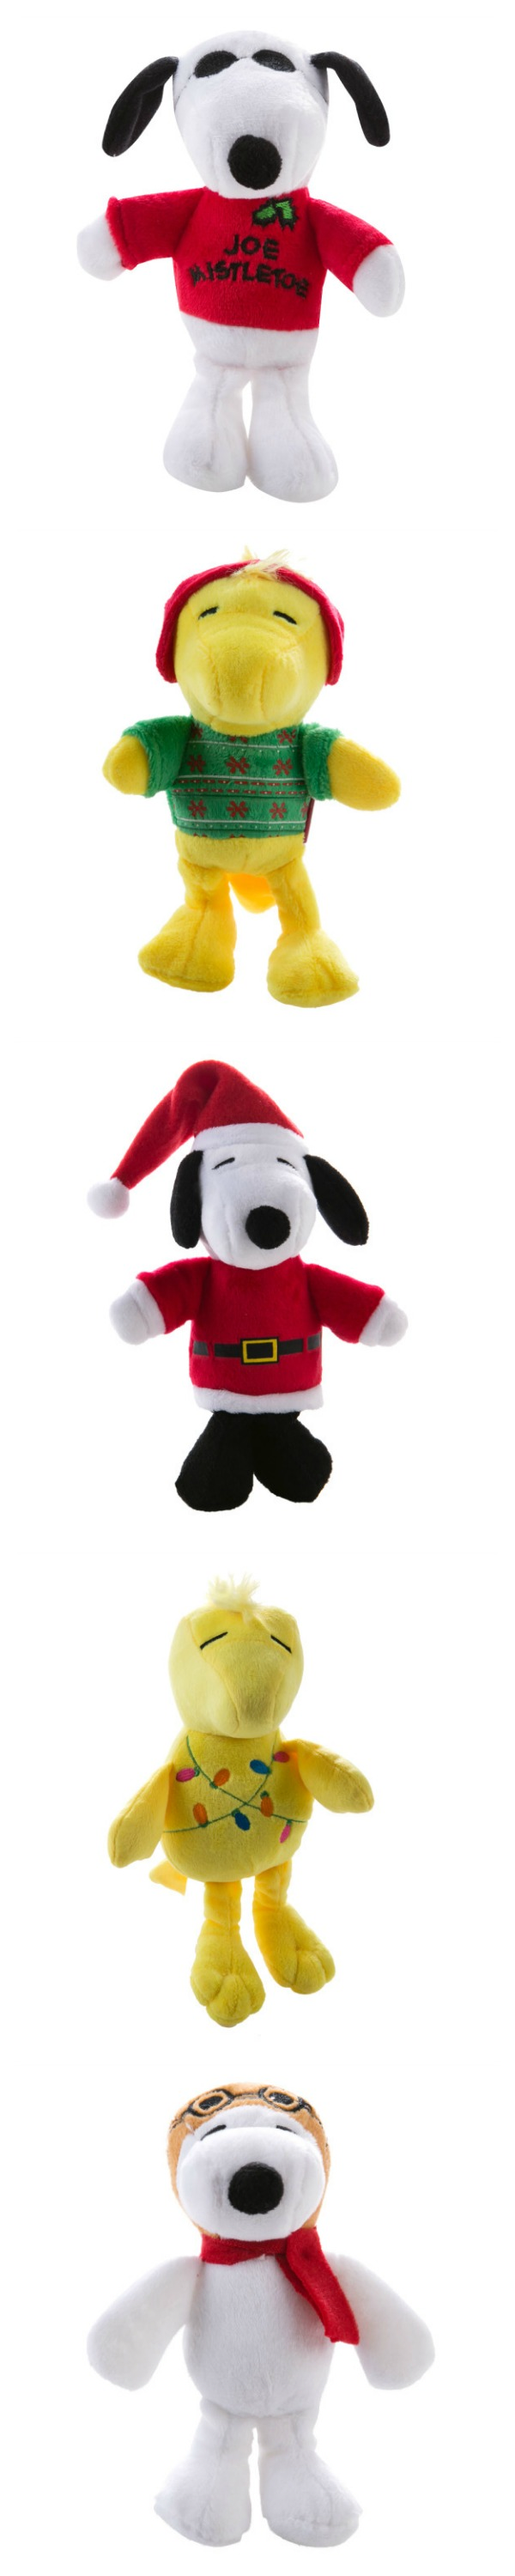 Give your dog something to celebrate! Nothing says fun like Snoopy and Woodstock dog toys. Start shopping at CollectPeanuts.com and help support our site.